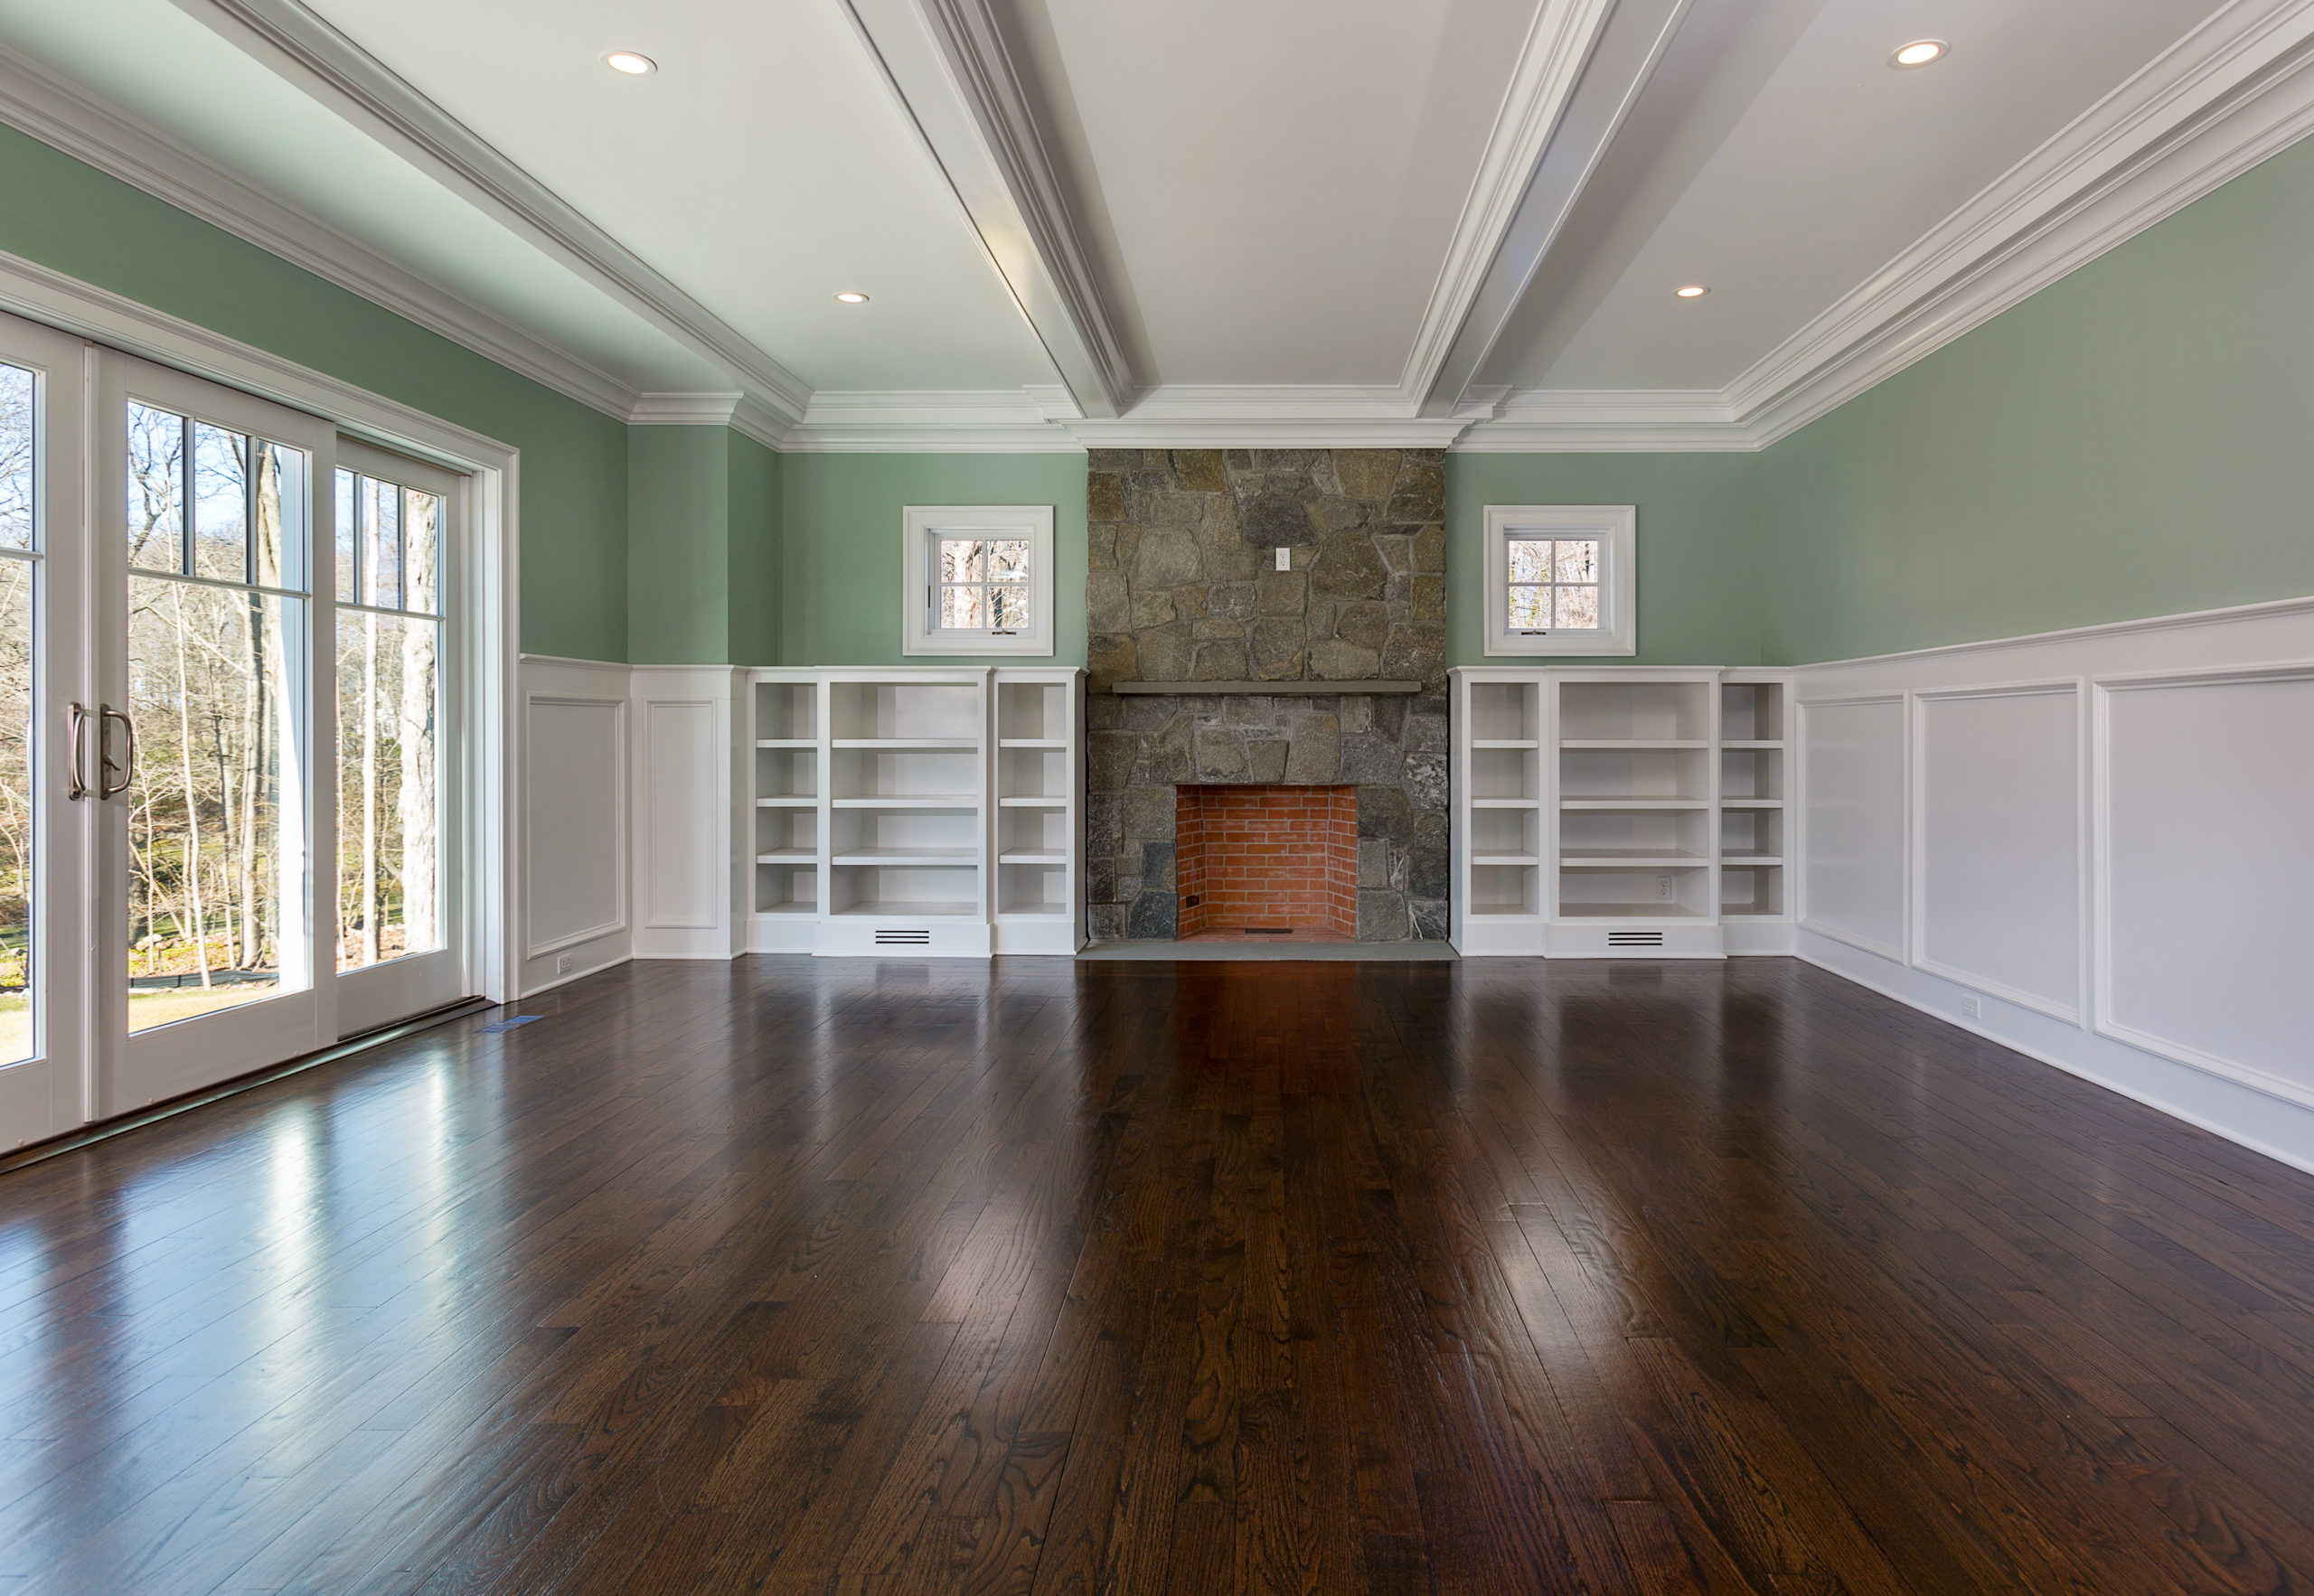 Reasons to repaint your home inside and out 4